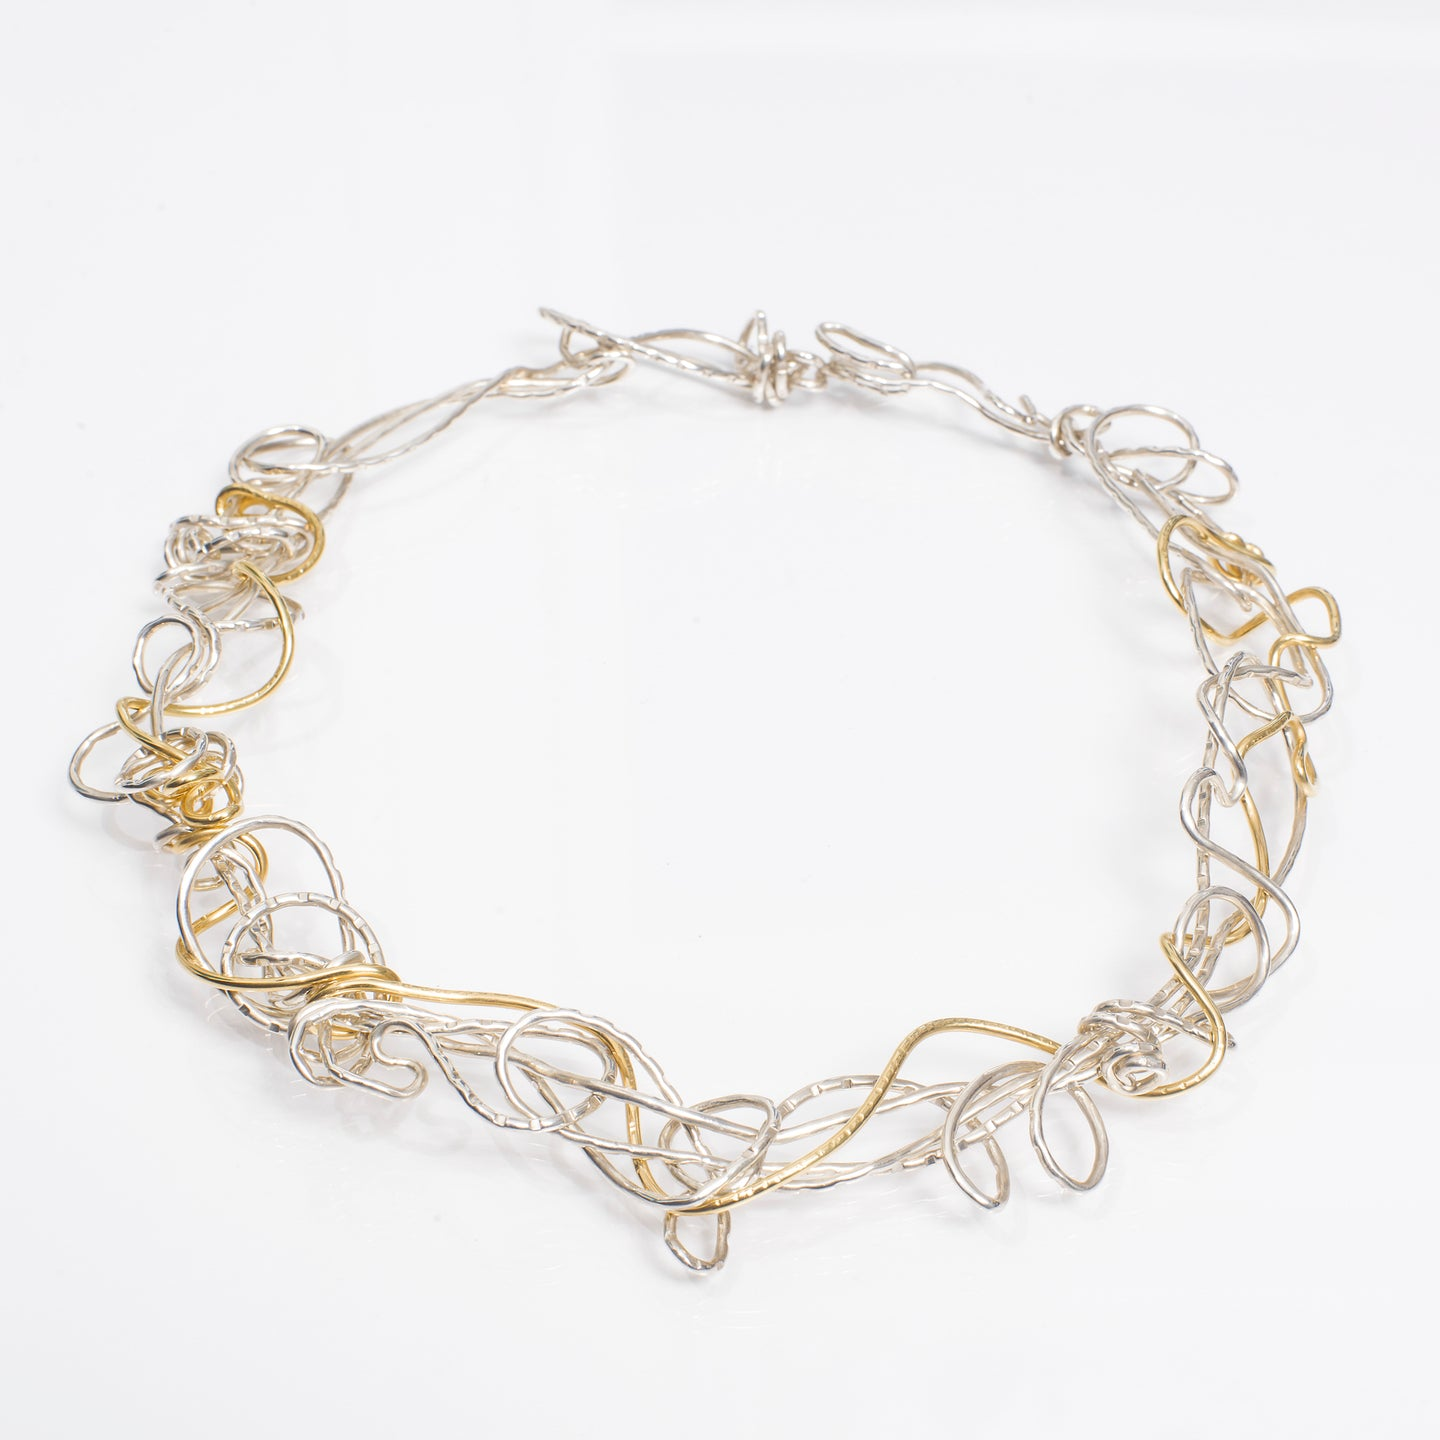 Silver and Gold Necklace | Nikki Sedacca Art Jewelry